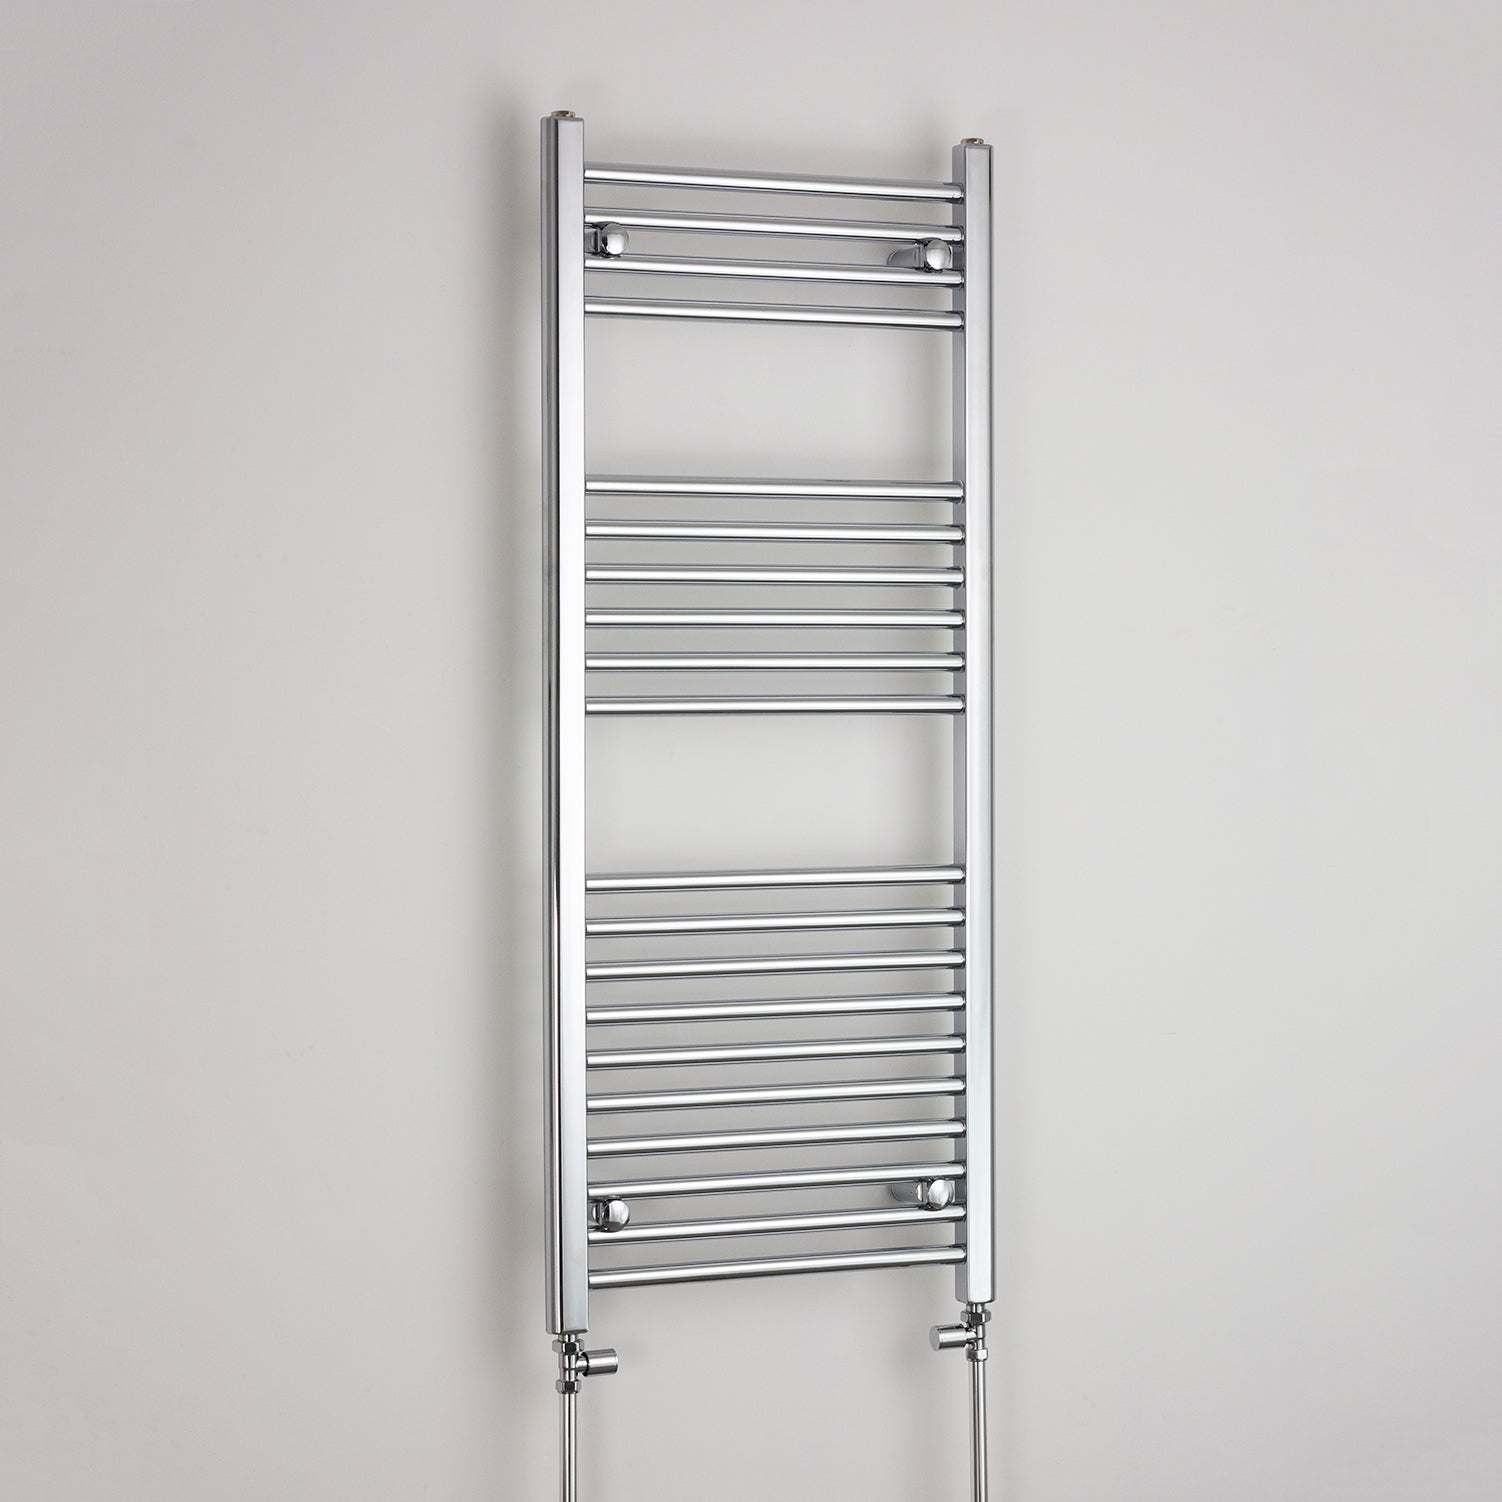 600mm Wide 1200mm High Flat Chrome Heated Towel Rail Radiator HTR,With Straight Valve